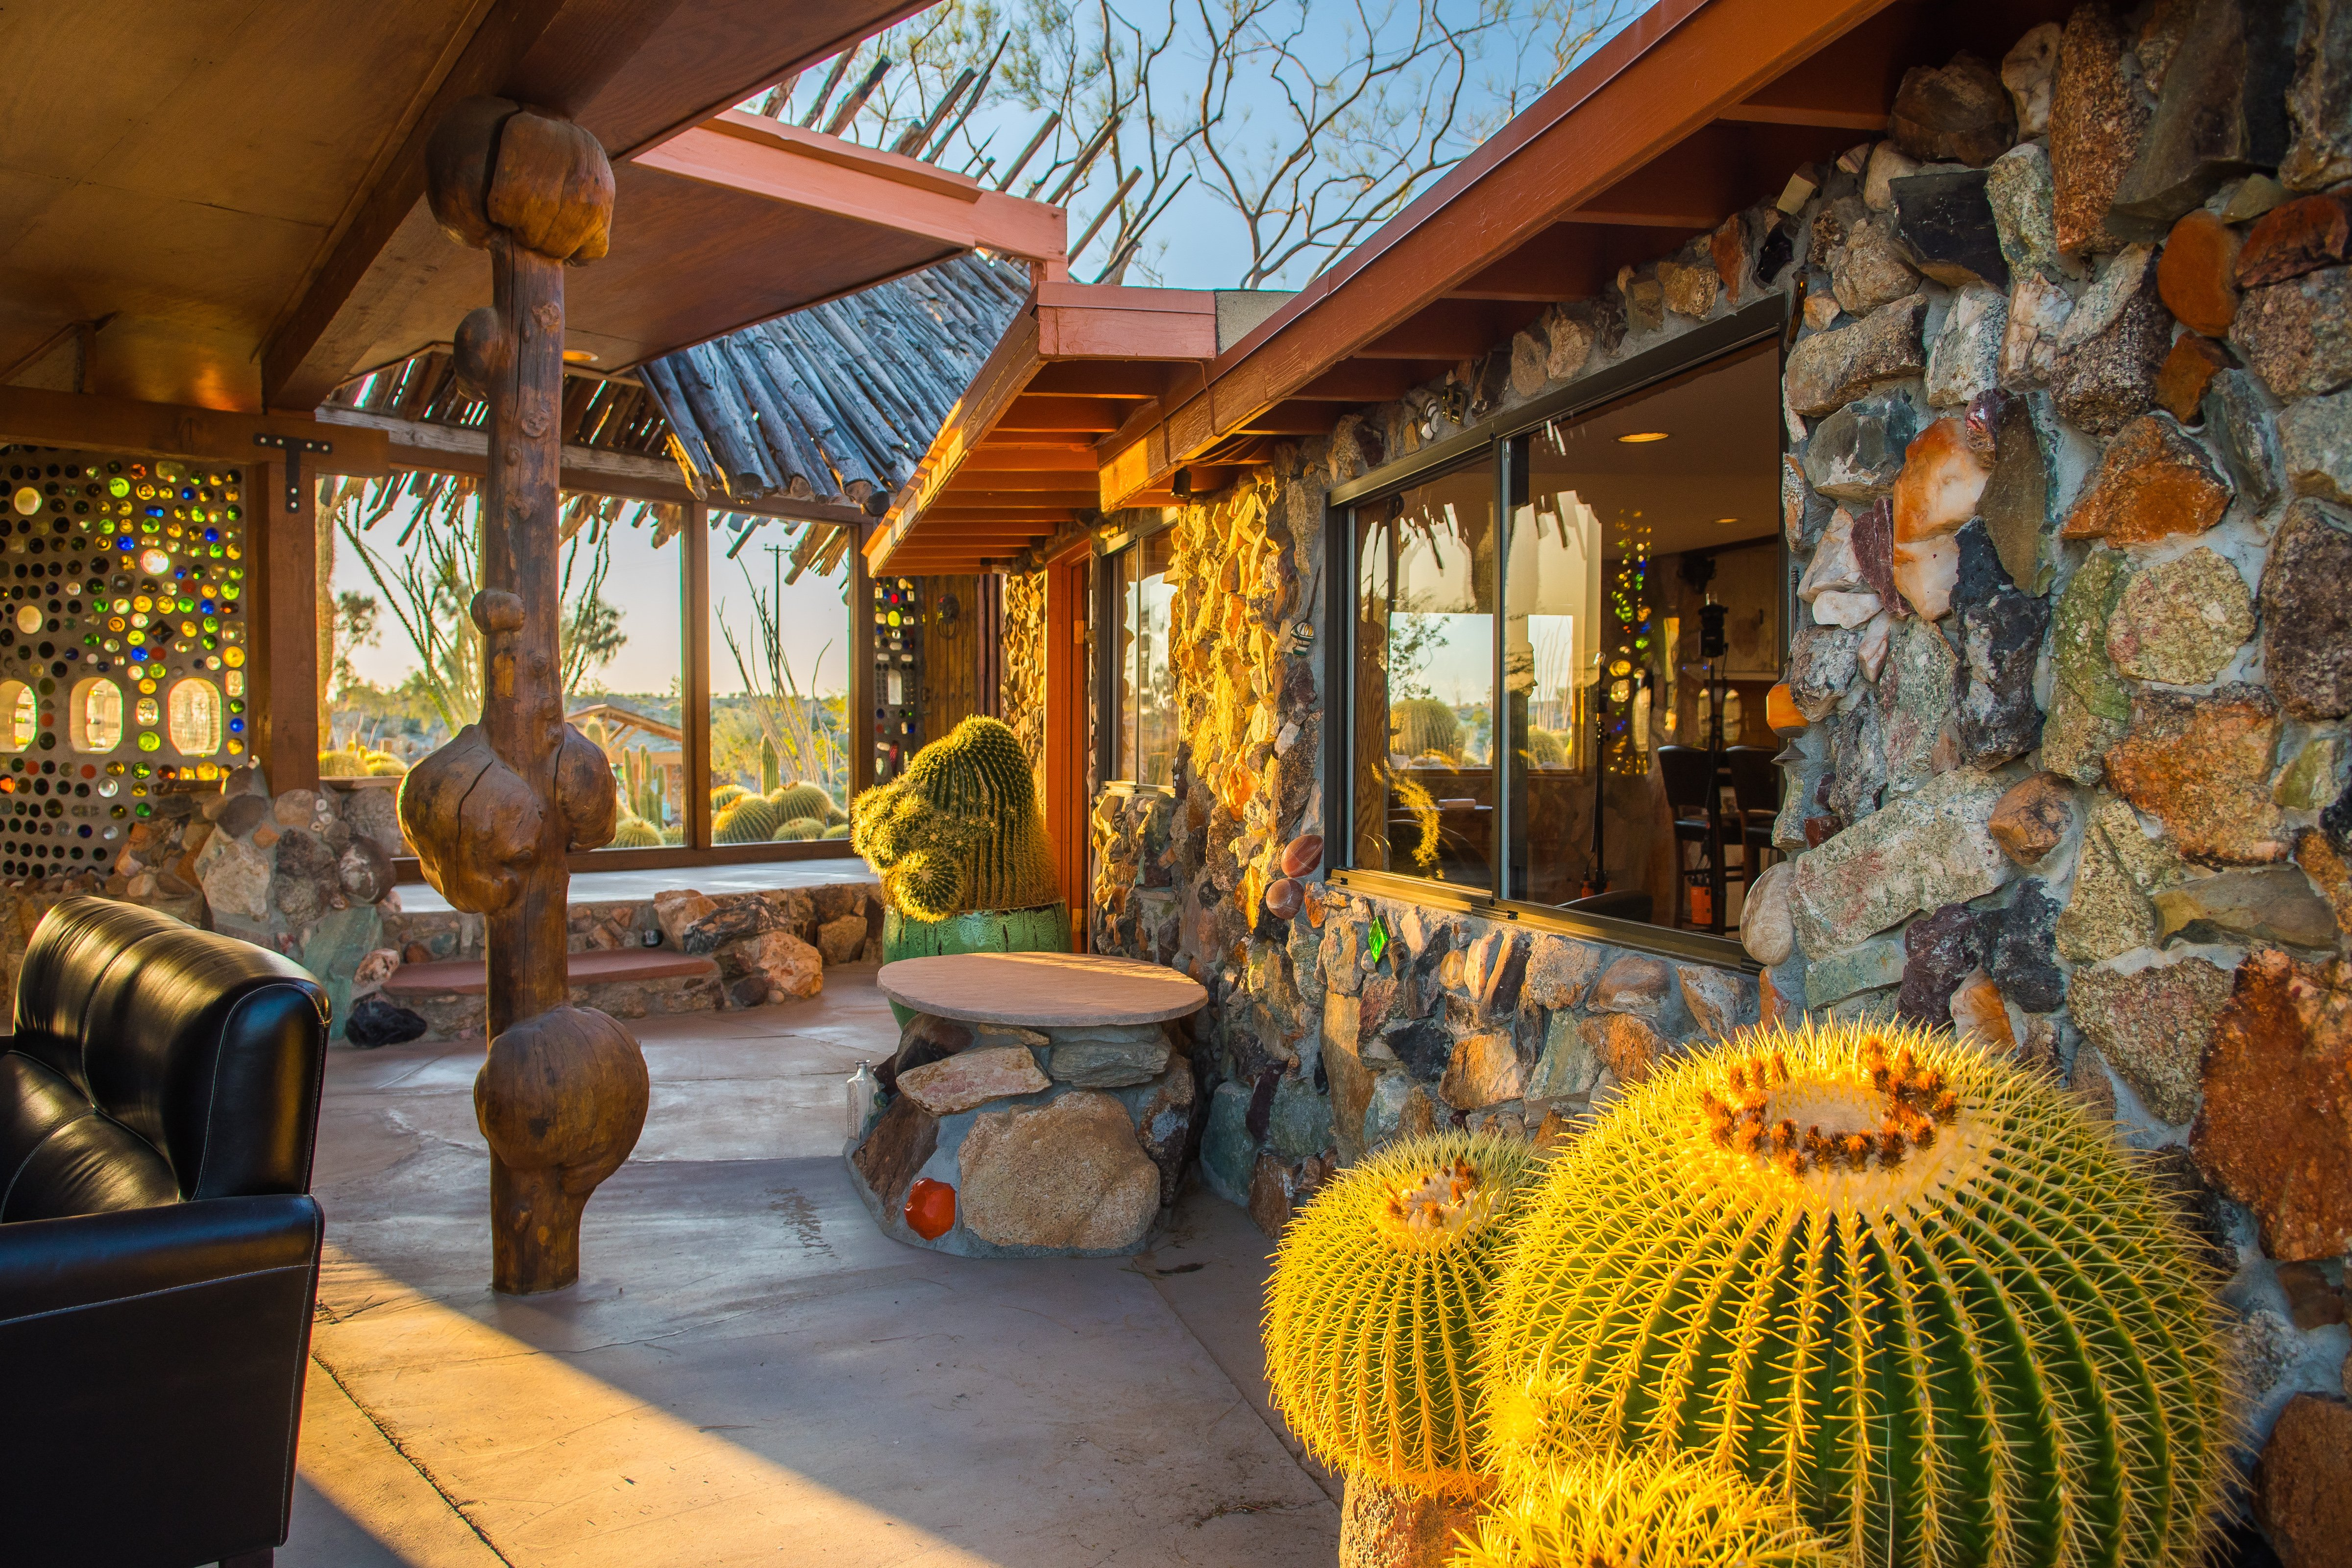 Incredible Joshua Tree home on 225 acres asks $4.5M